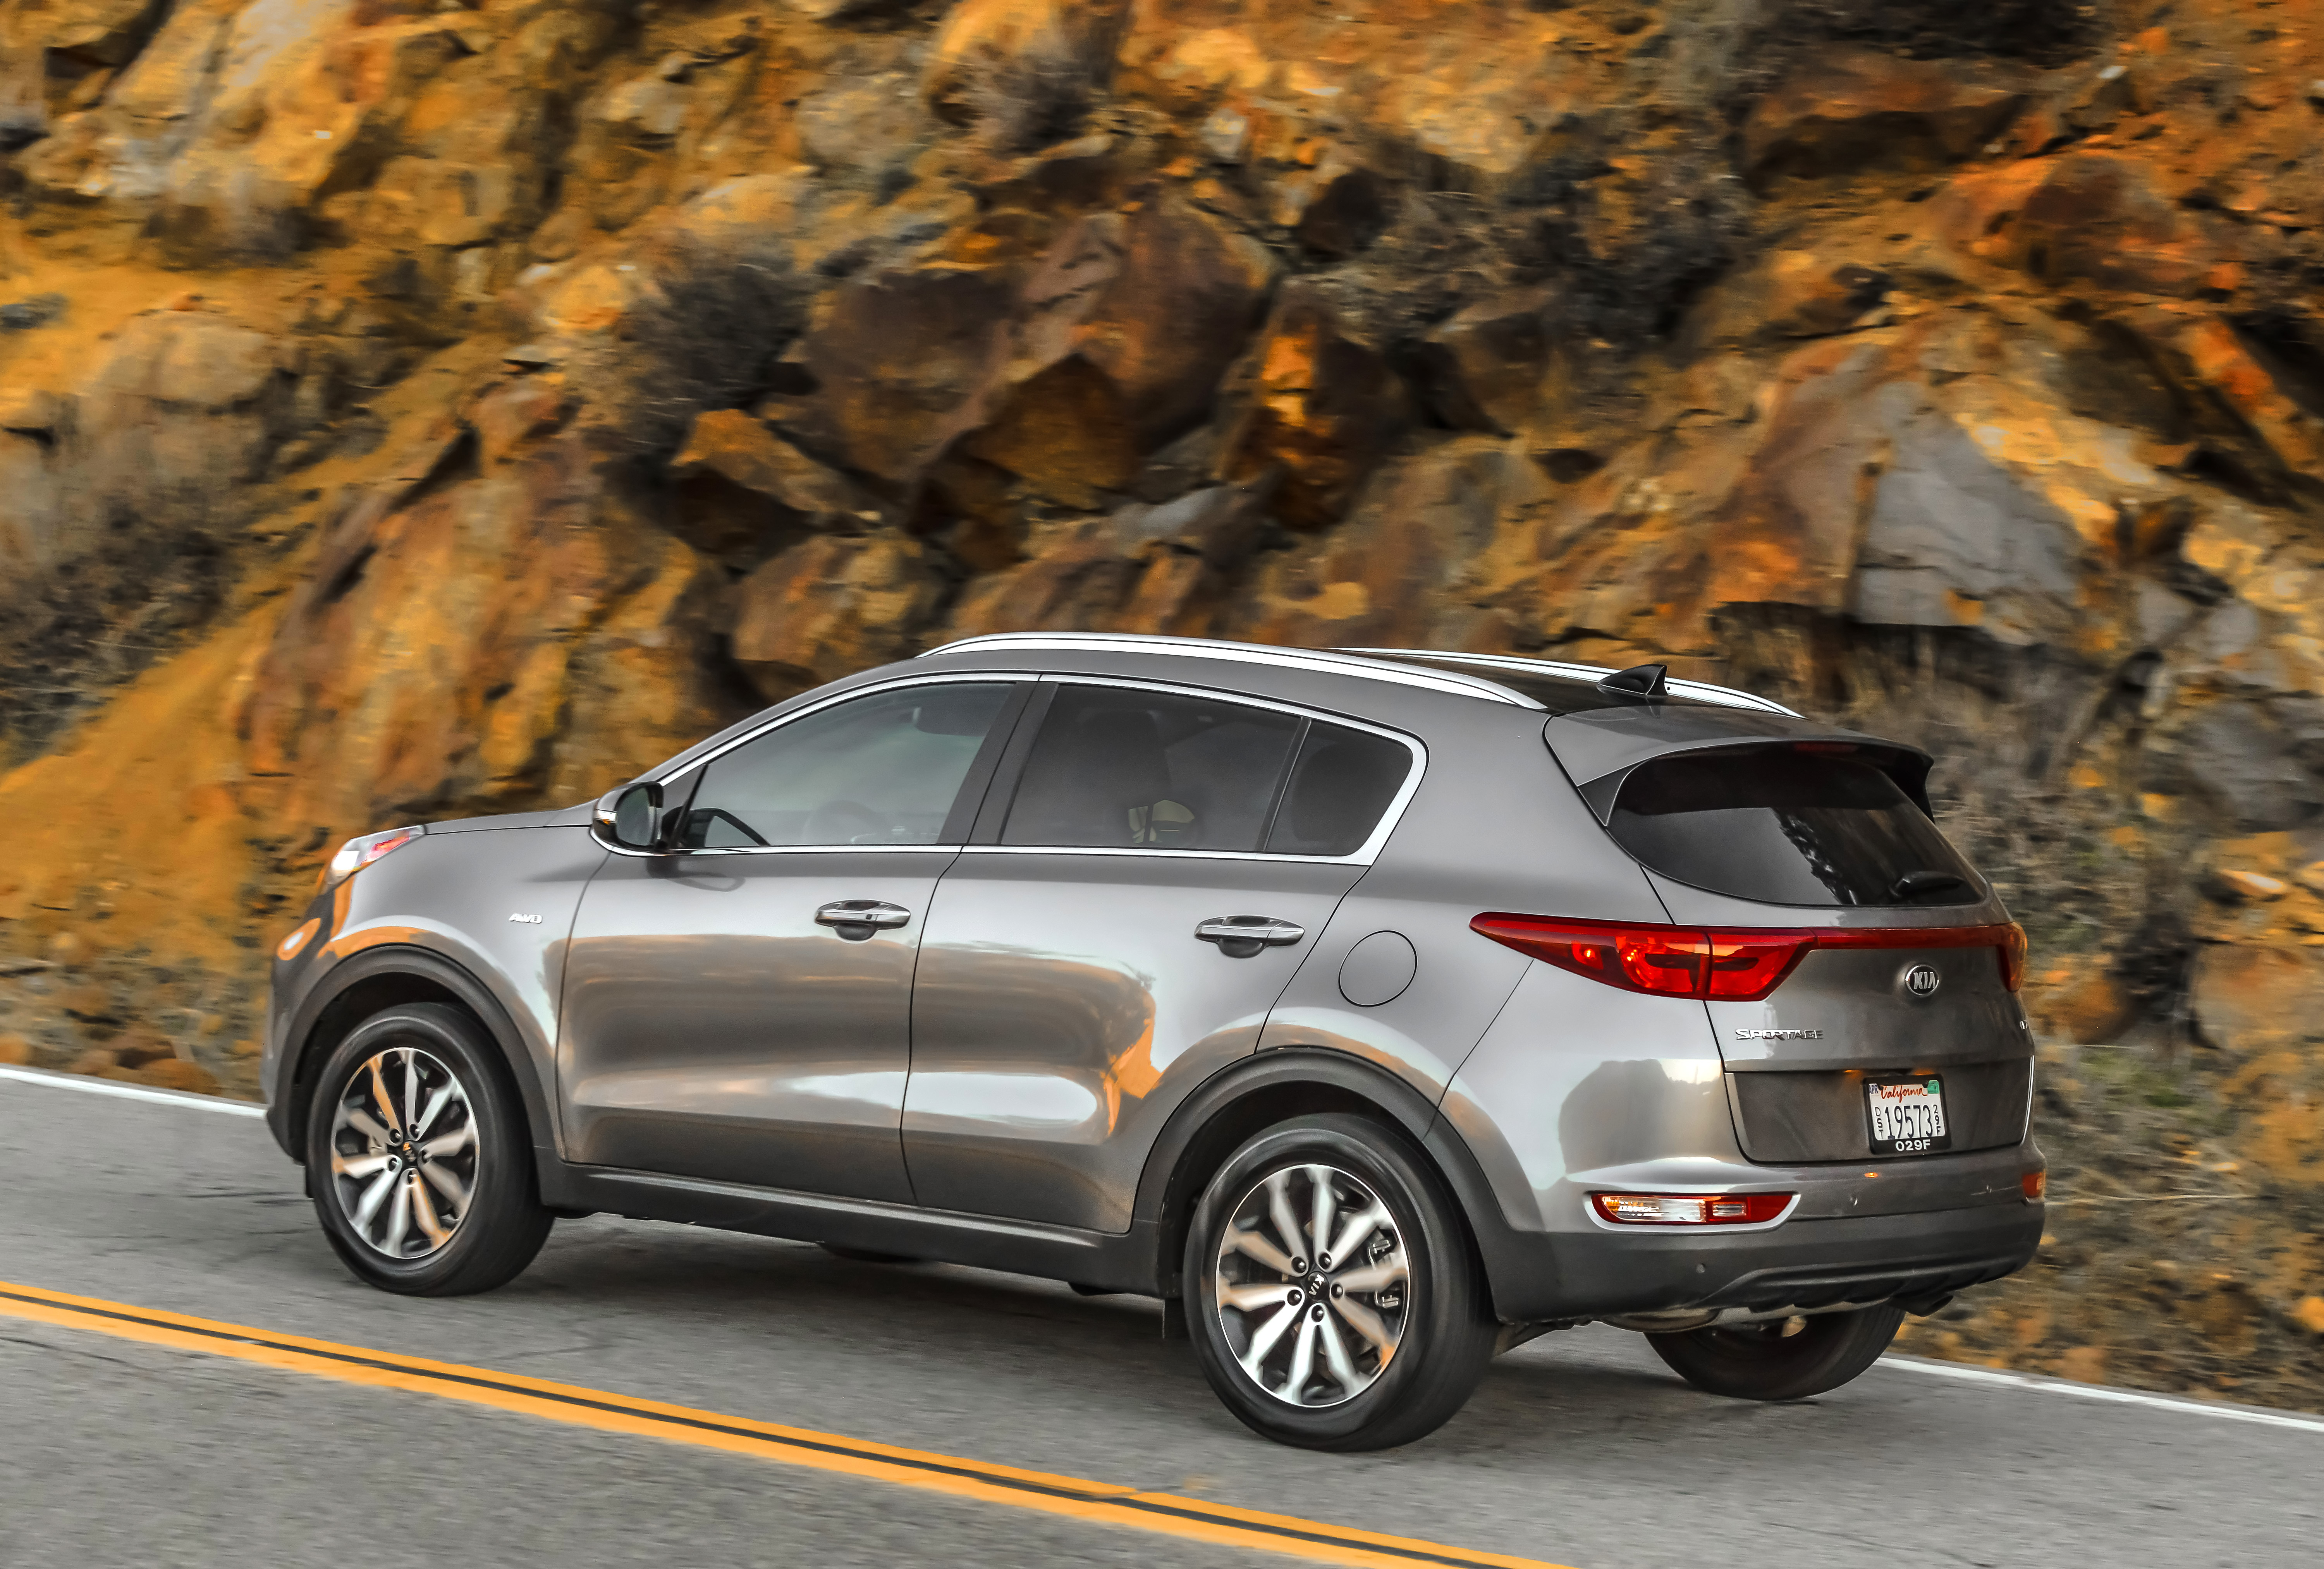 2017 kia sportage ex review new look for an old favorite nerdwallet. Black Bedroom Furniture Sets. Home Design Ideas